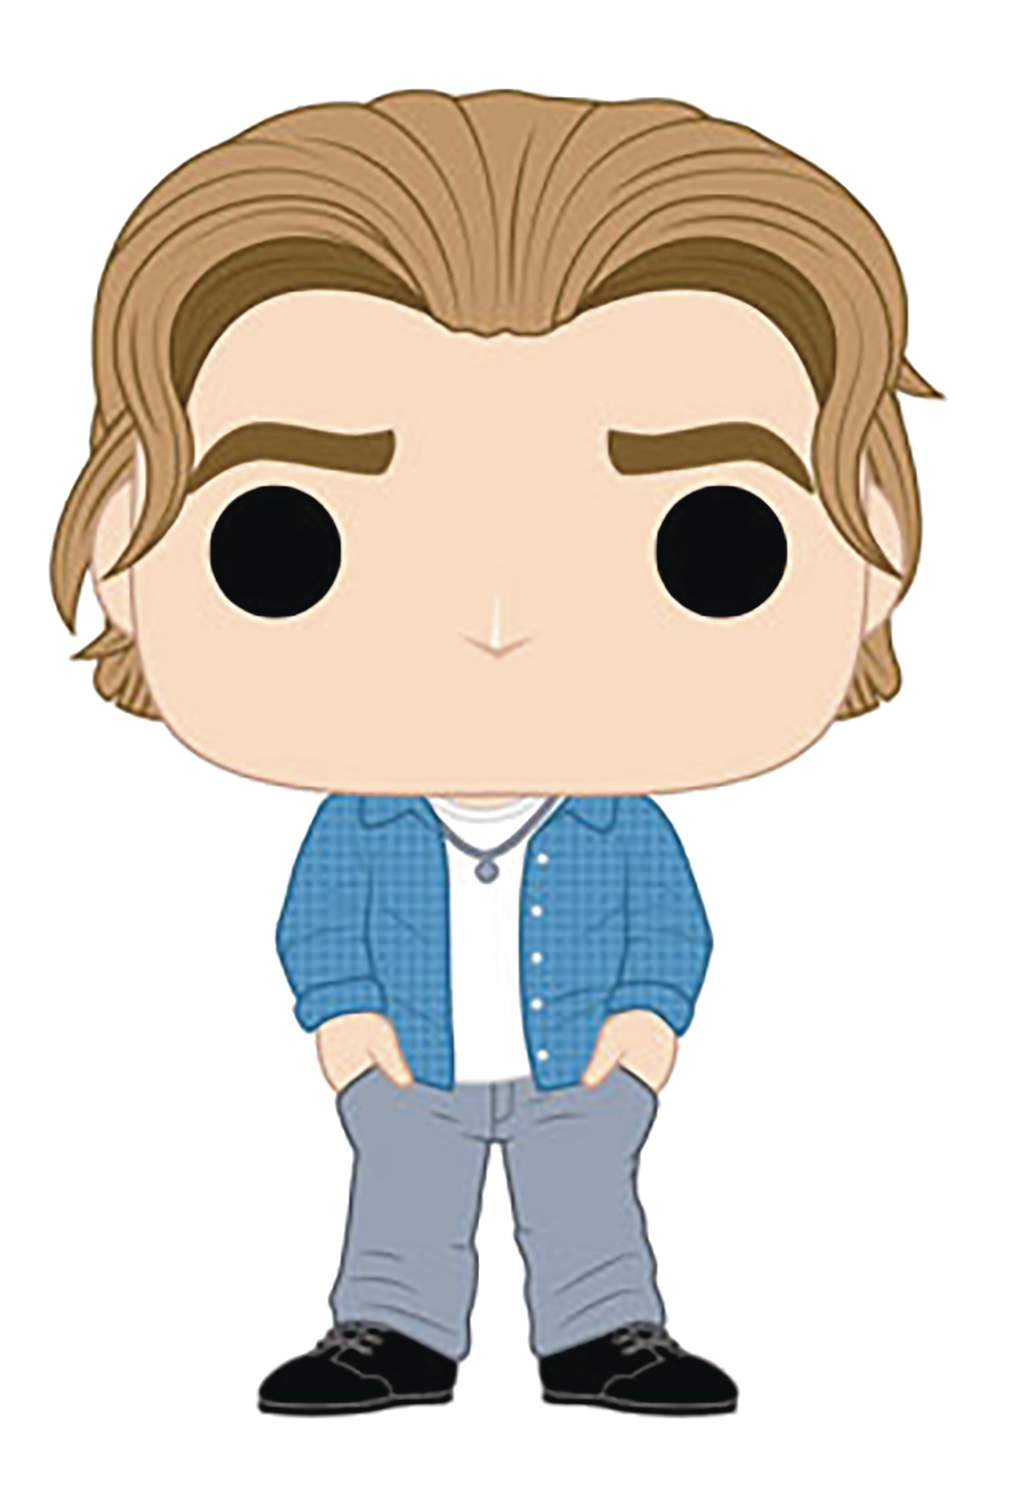 POP TV DAWSONS CREEK S1 DAWSON VINYL FIG